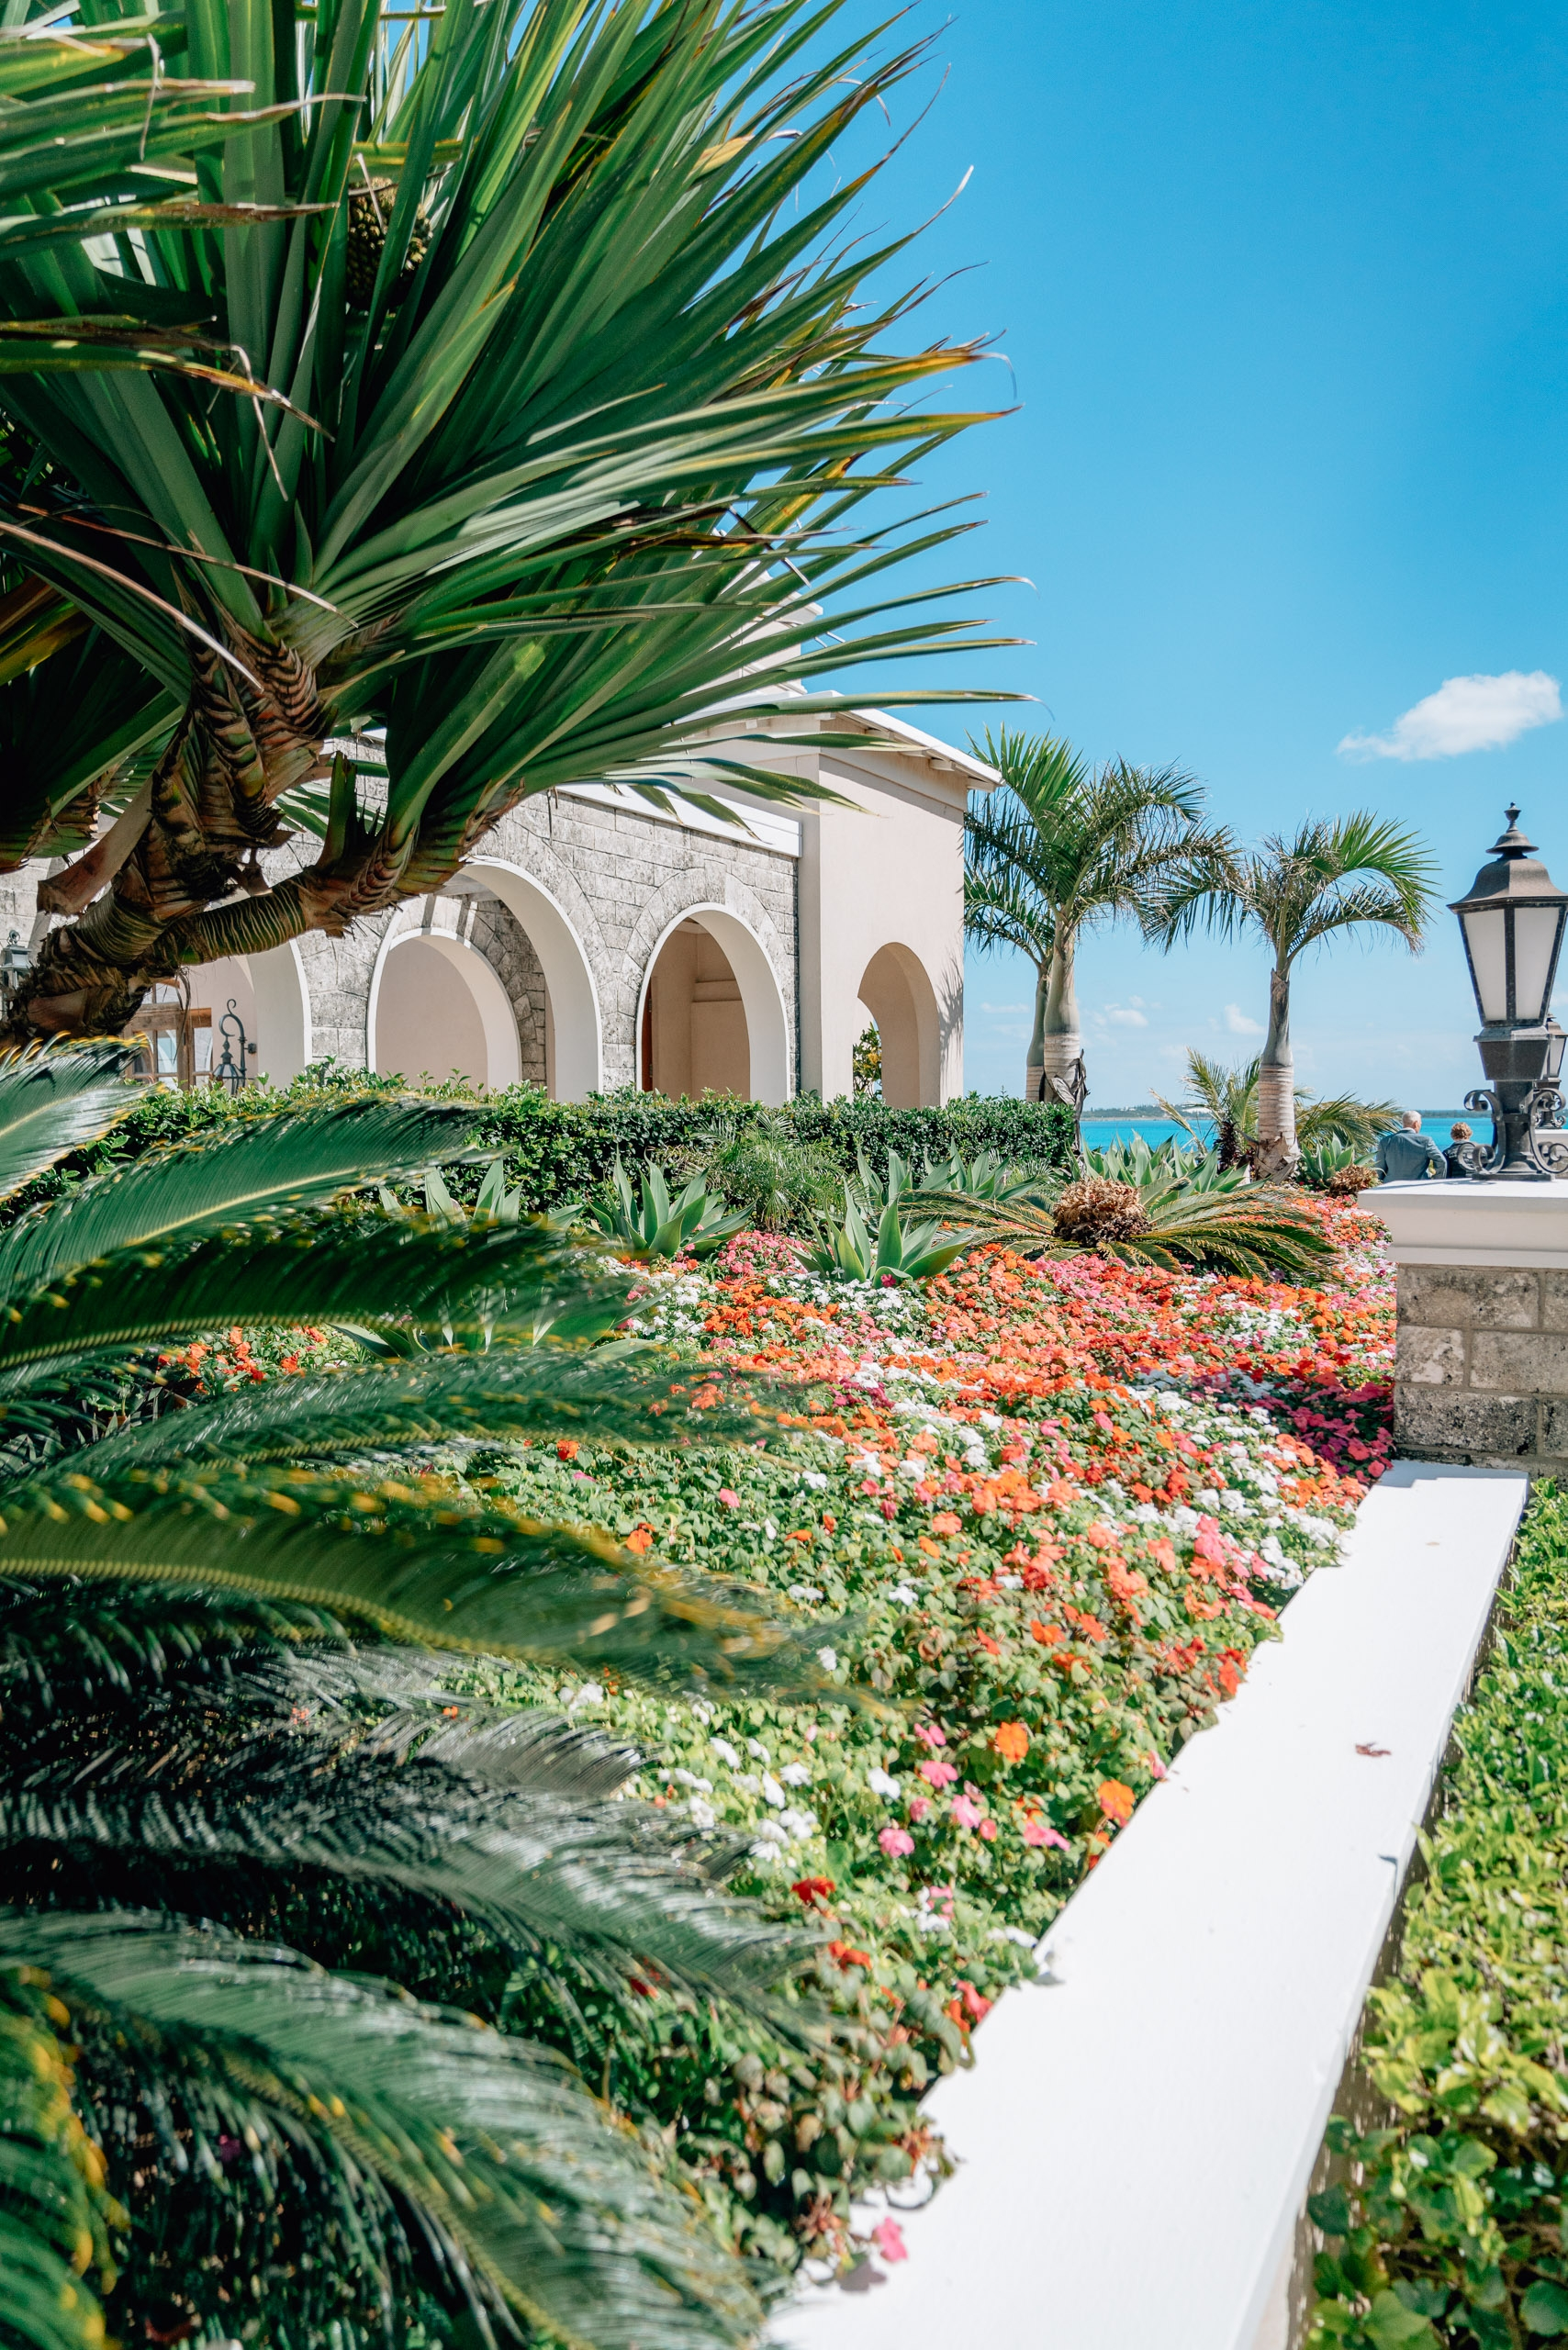 The Entrance to the Rosewood Bermuda